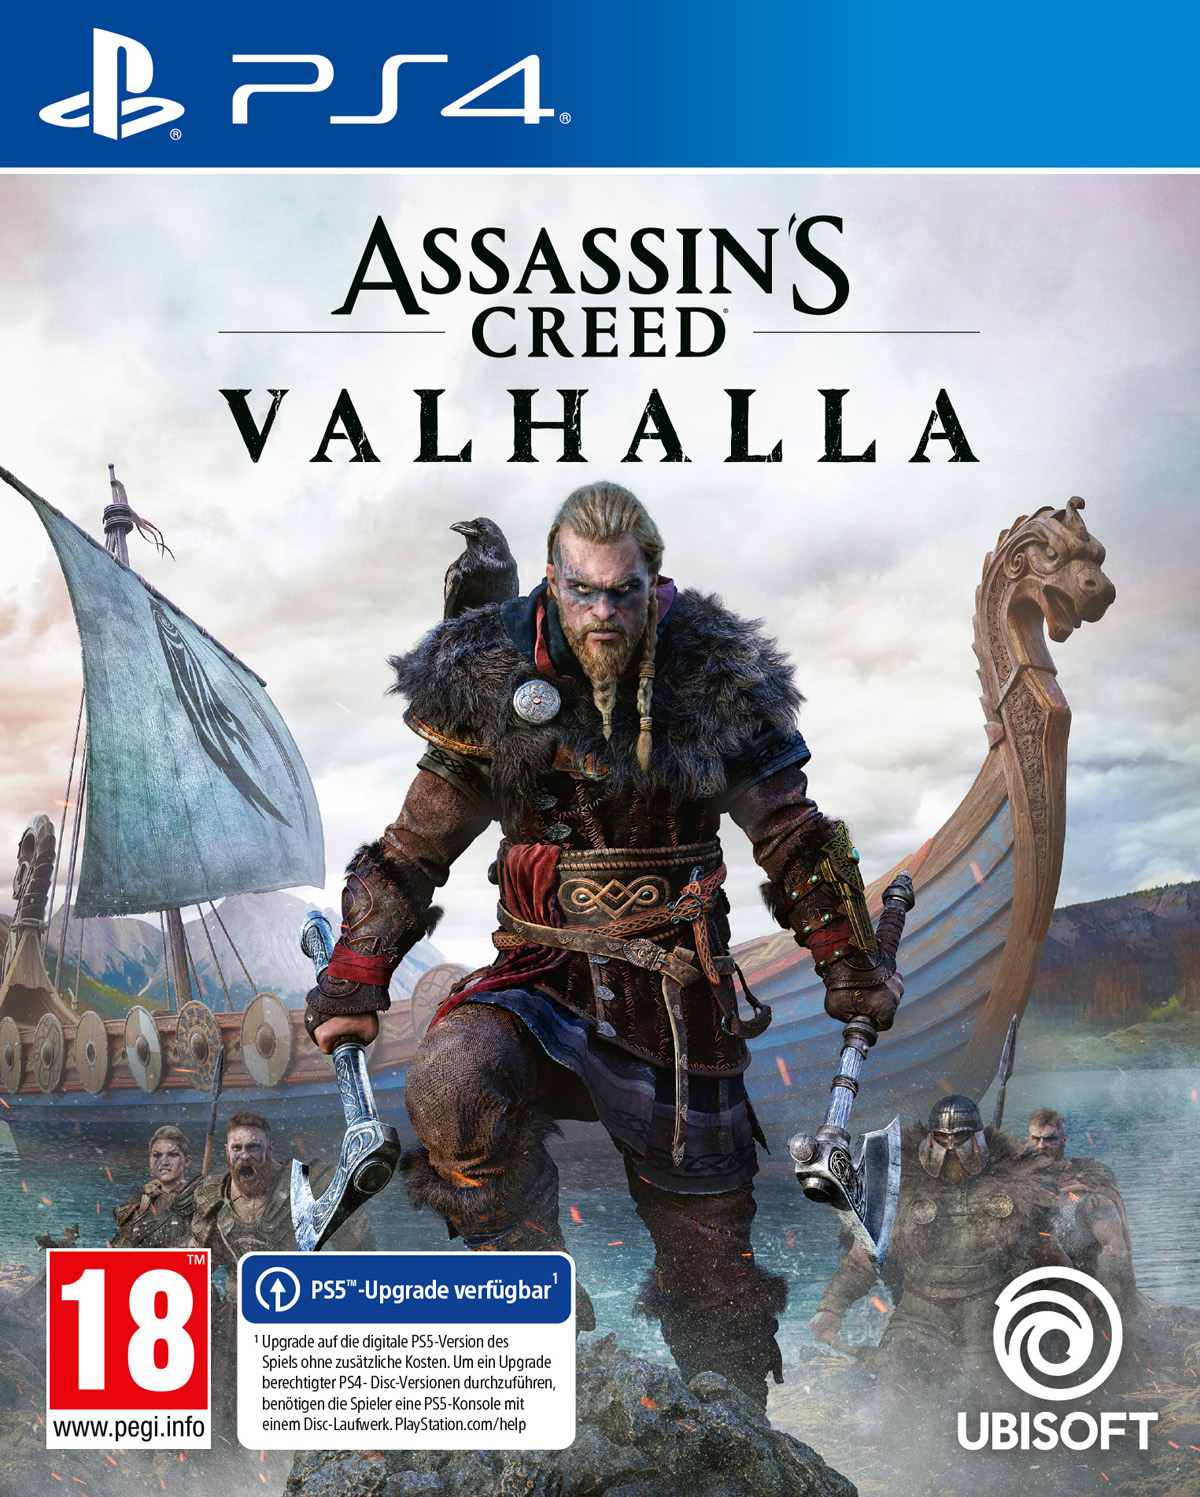 Assassin's Creed Valhalla [PS4] 5.05 / 6.72 / 7.02 / 7.55 [EUR] (2020) [Русский] (v1.00)